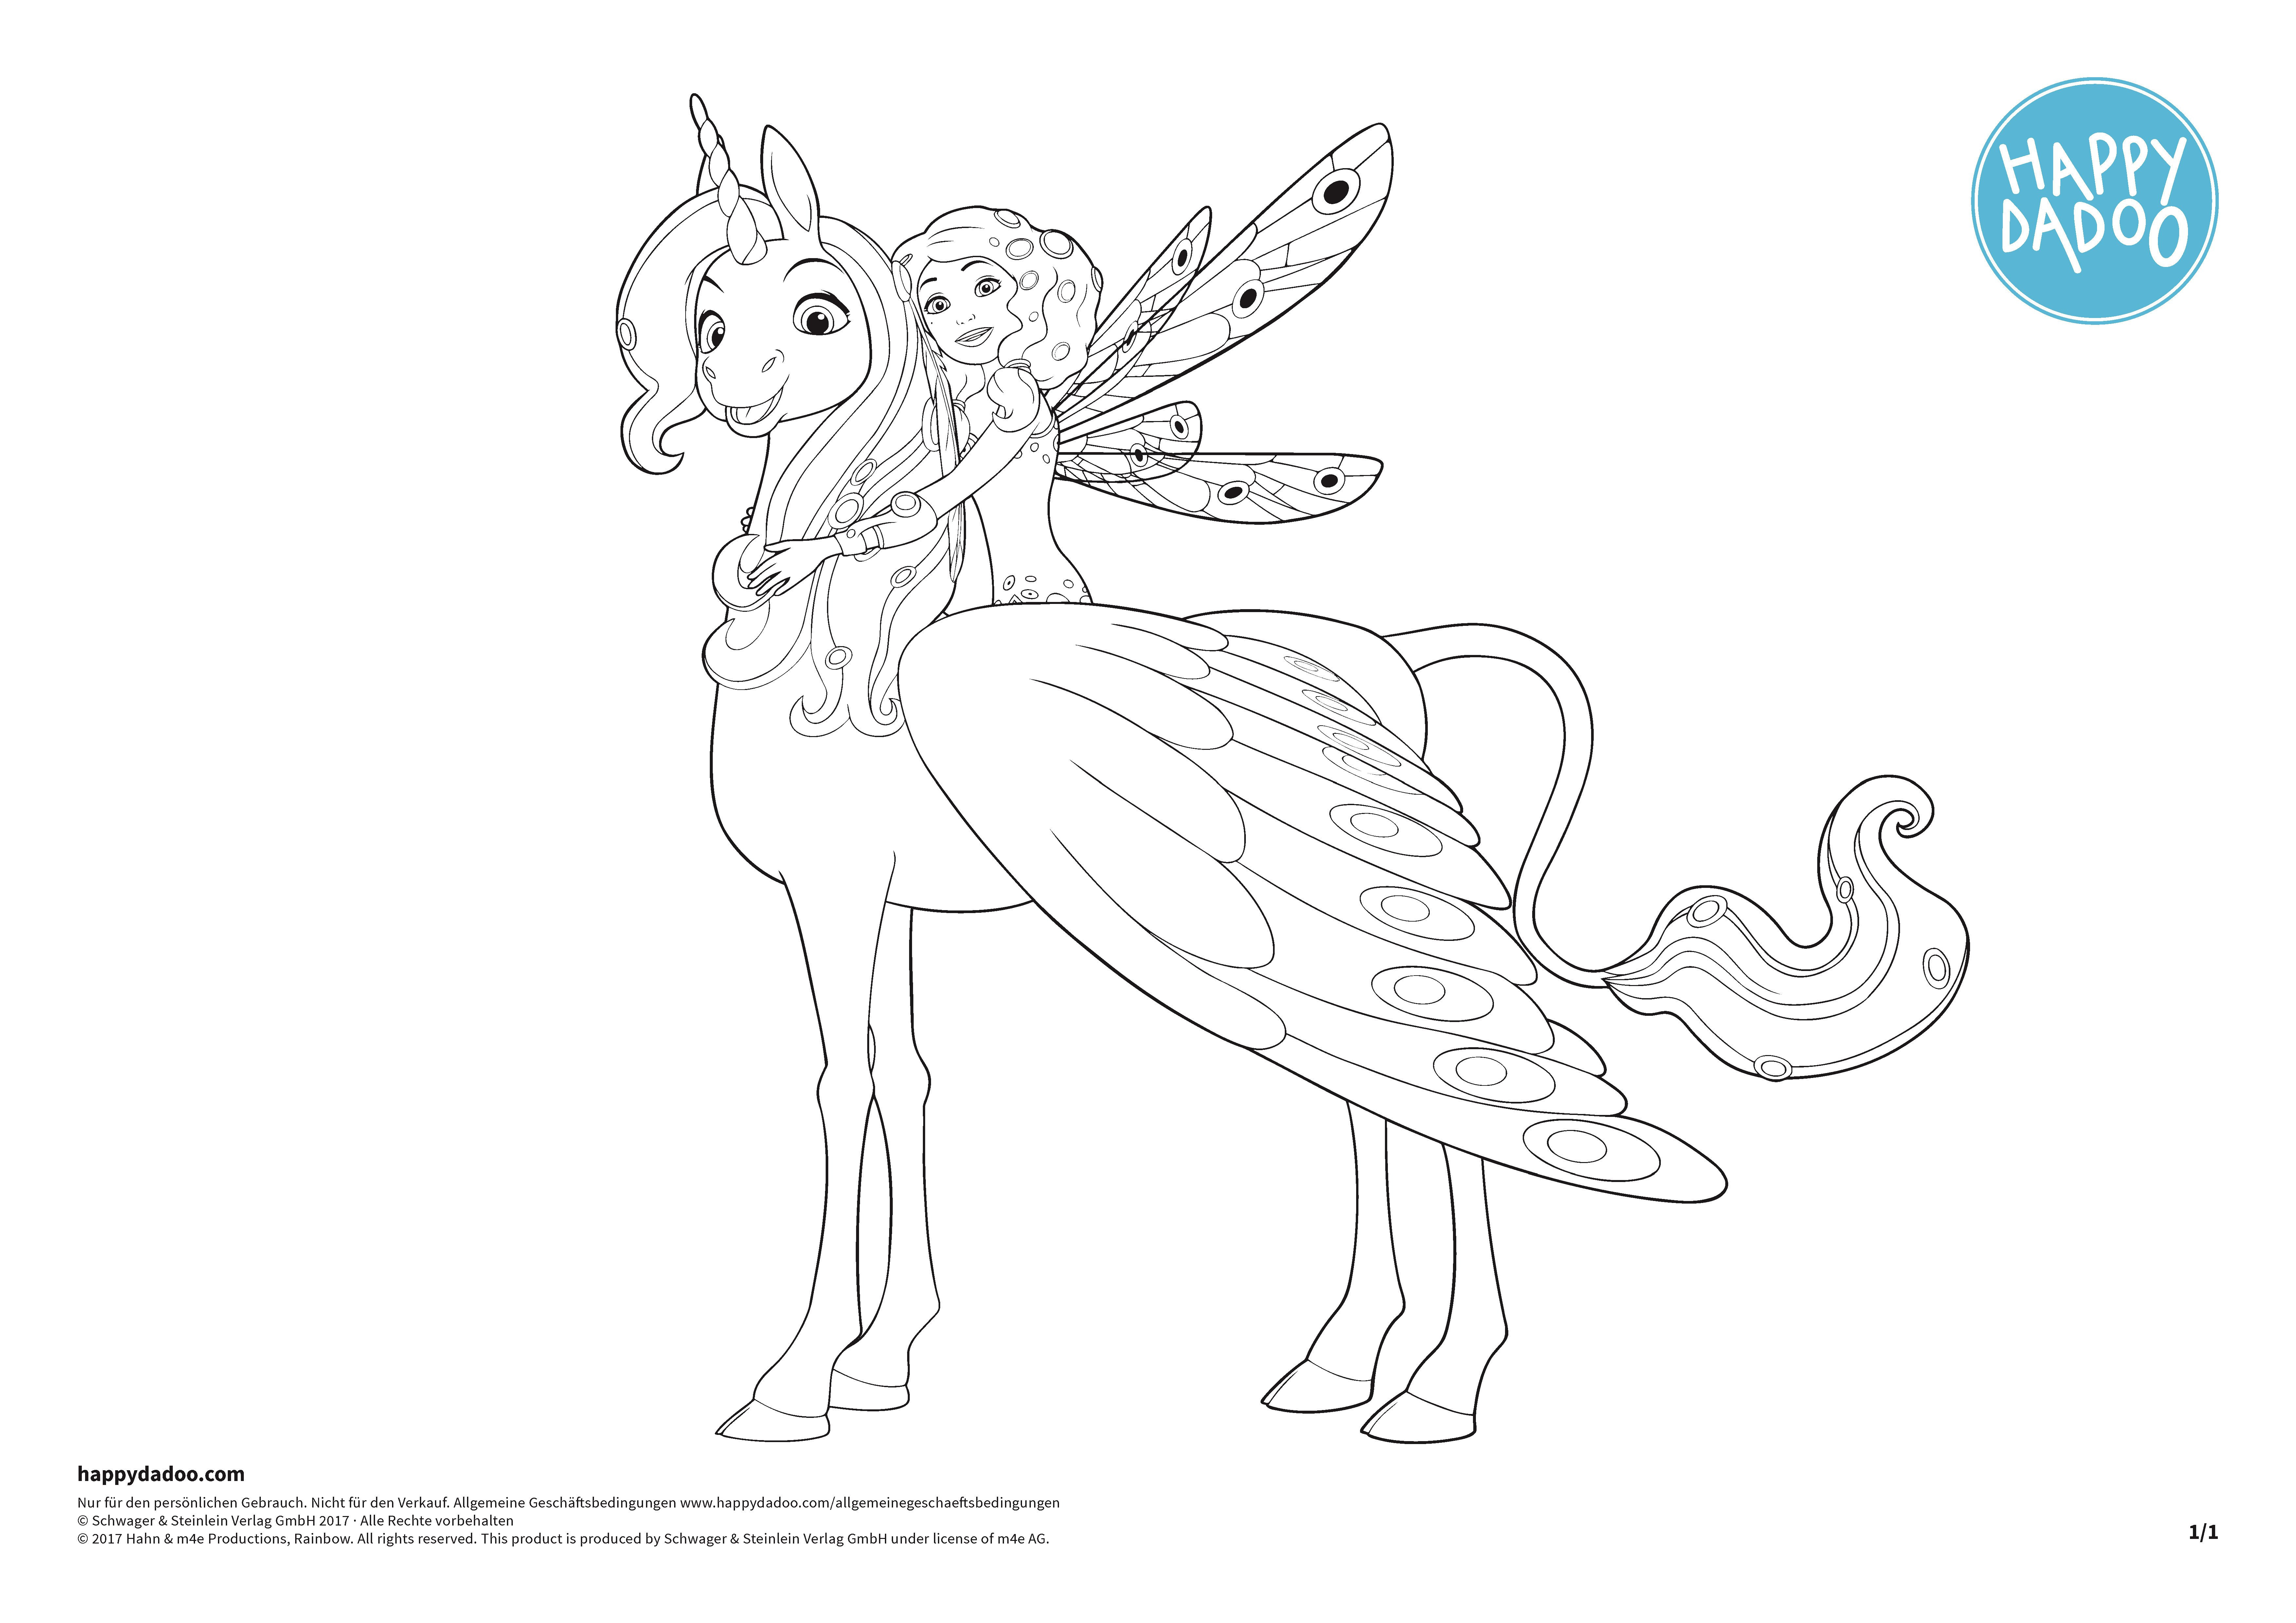 Mia and Me Coloring Pages Neu Mia and Me Coloring Pages Awesome Elegant Ausmalbilder Mia and Me Fotografieren